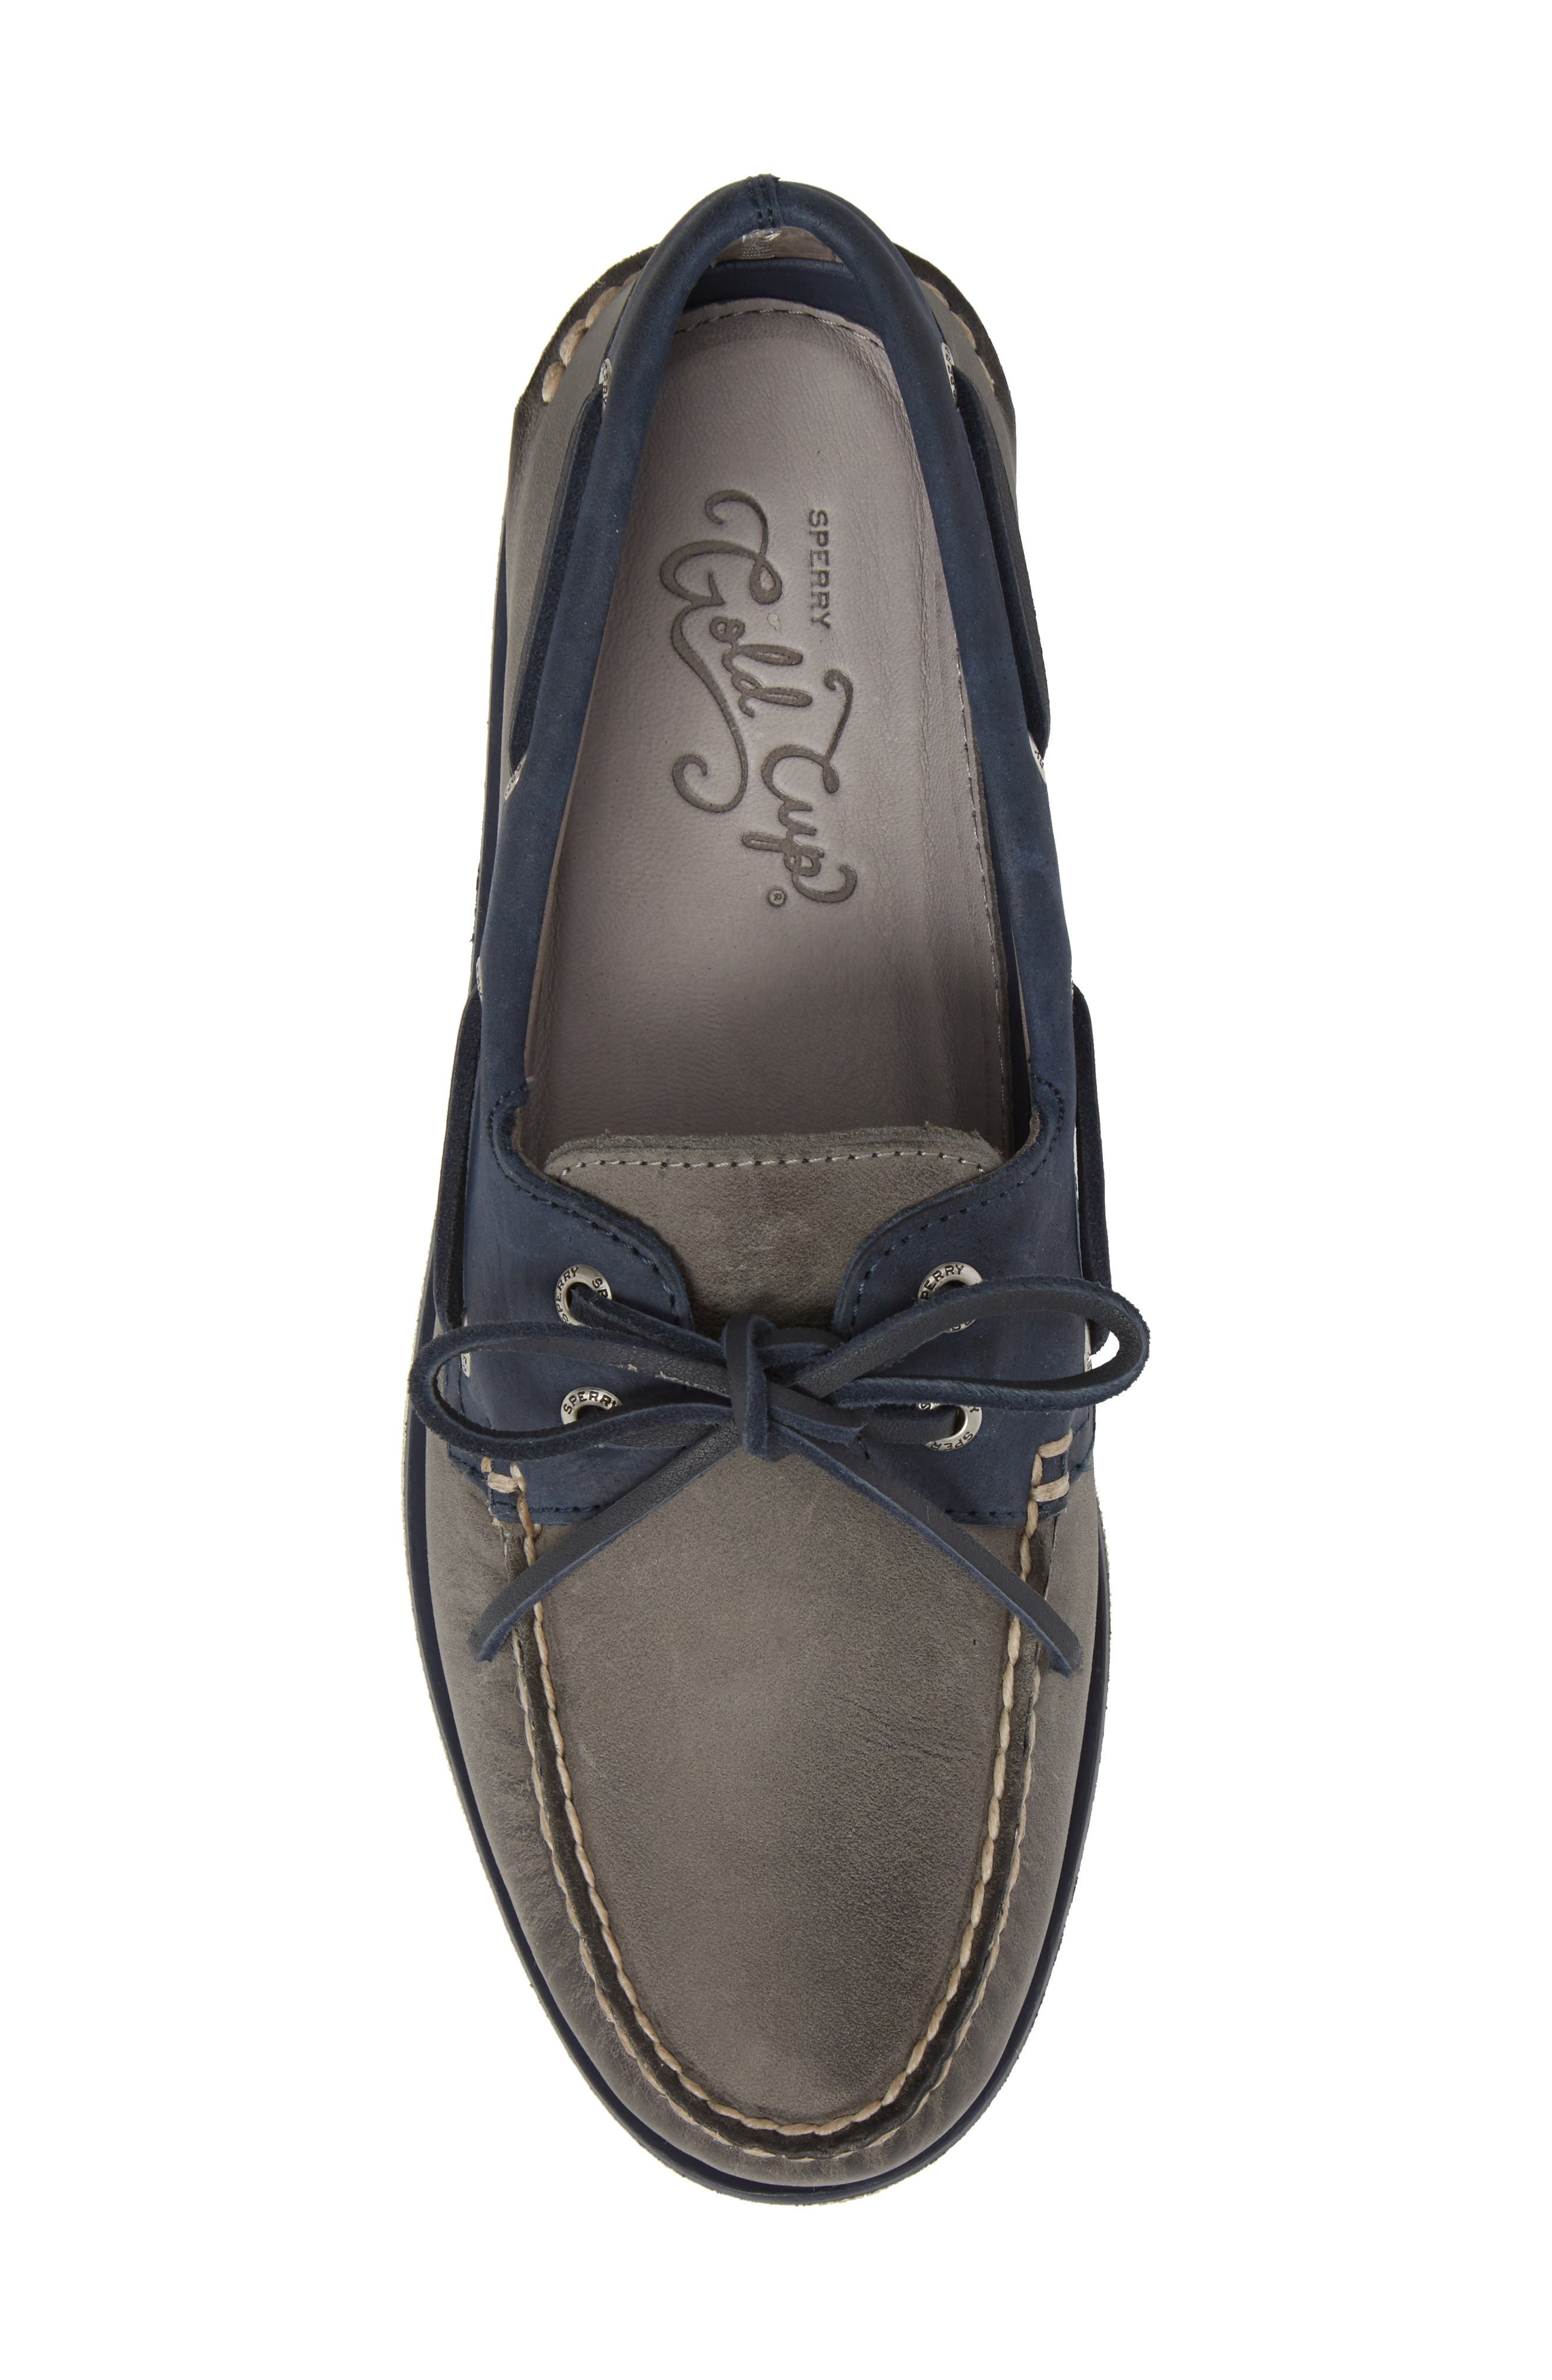 Gold Cup Authentic Original Boat Shoe,                             Alternate thumbnail 5, color,                             Grey/ Navy Leather